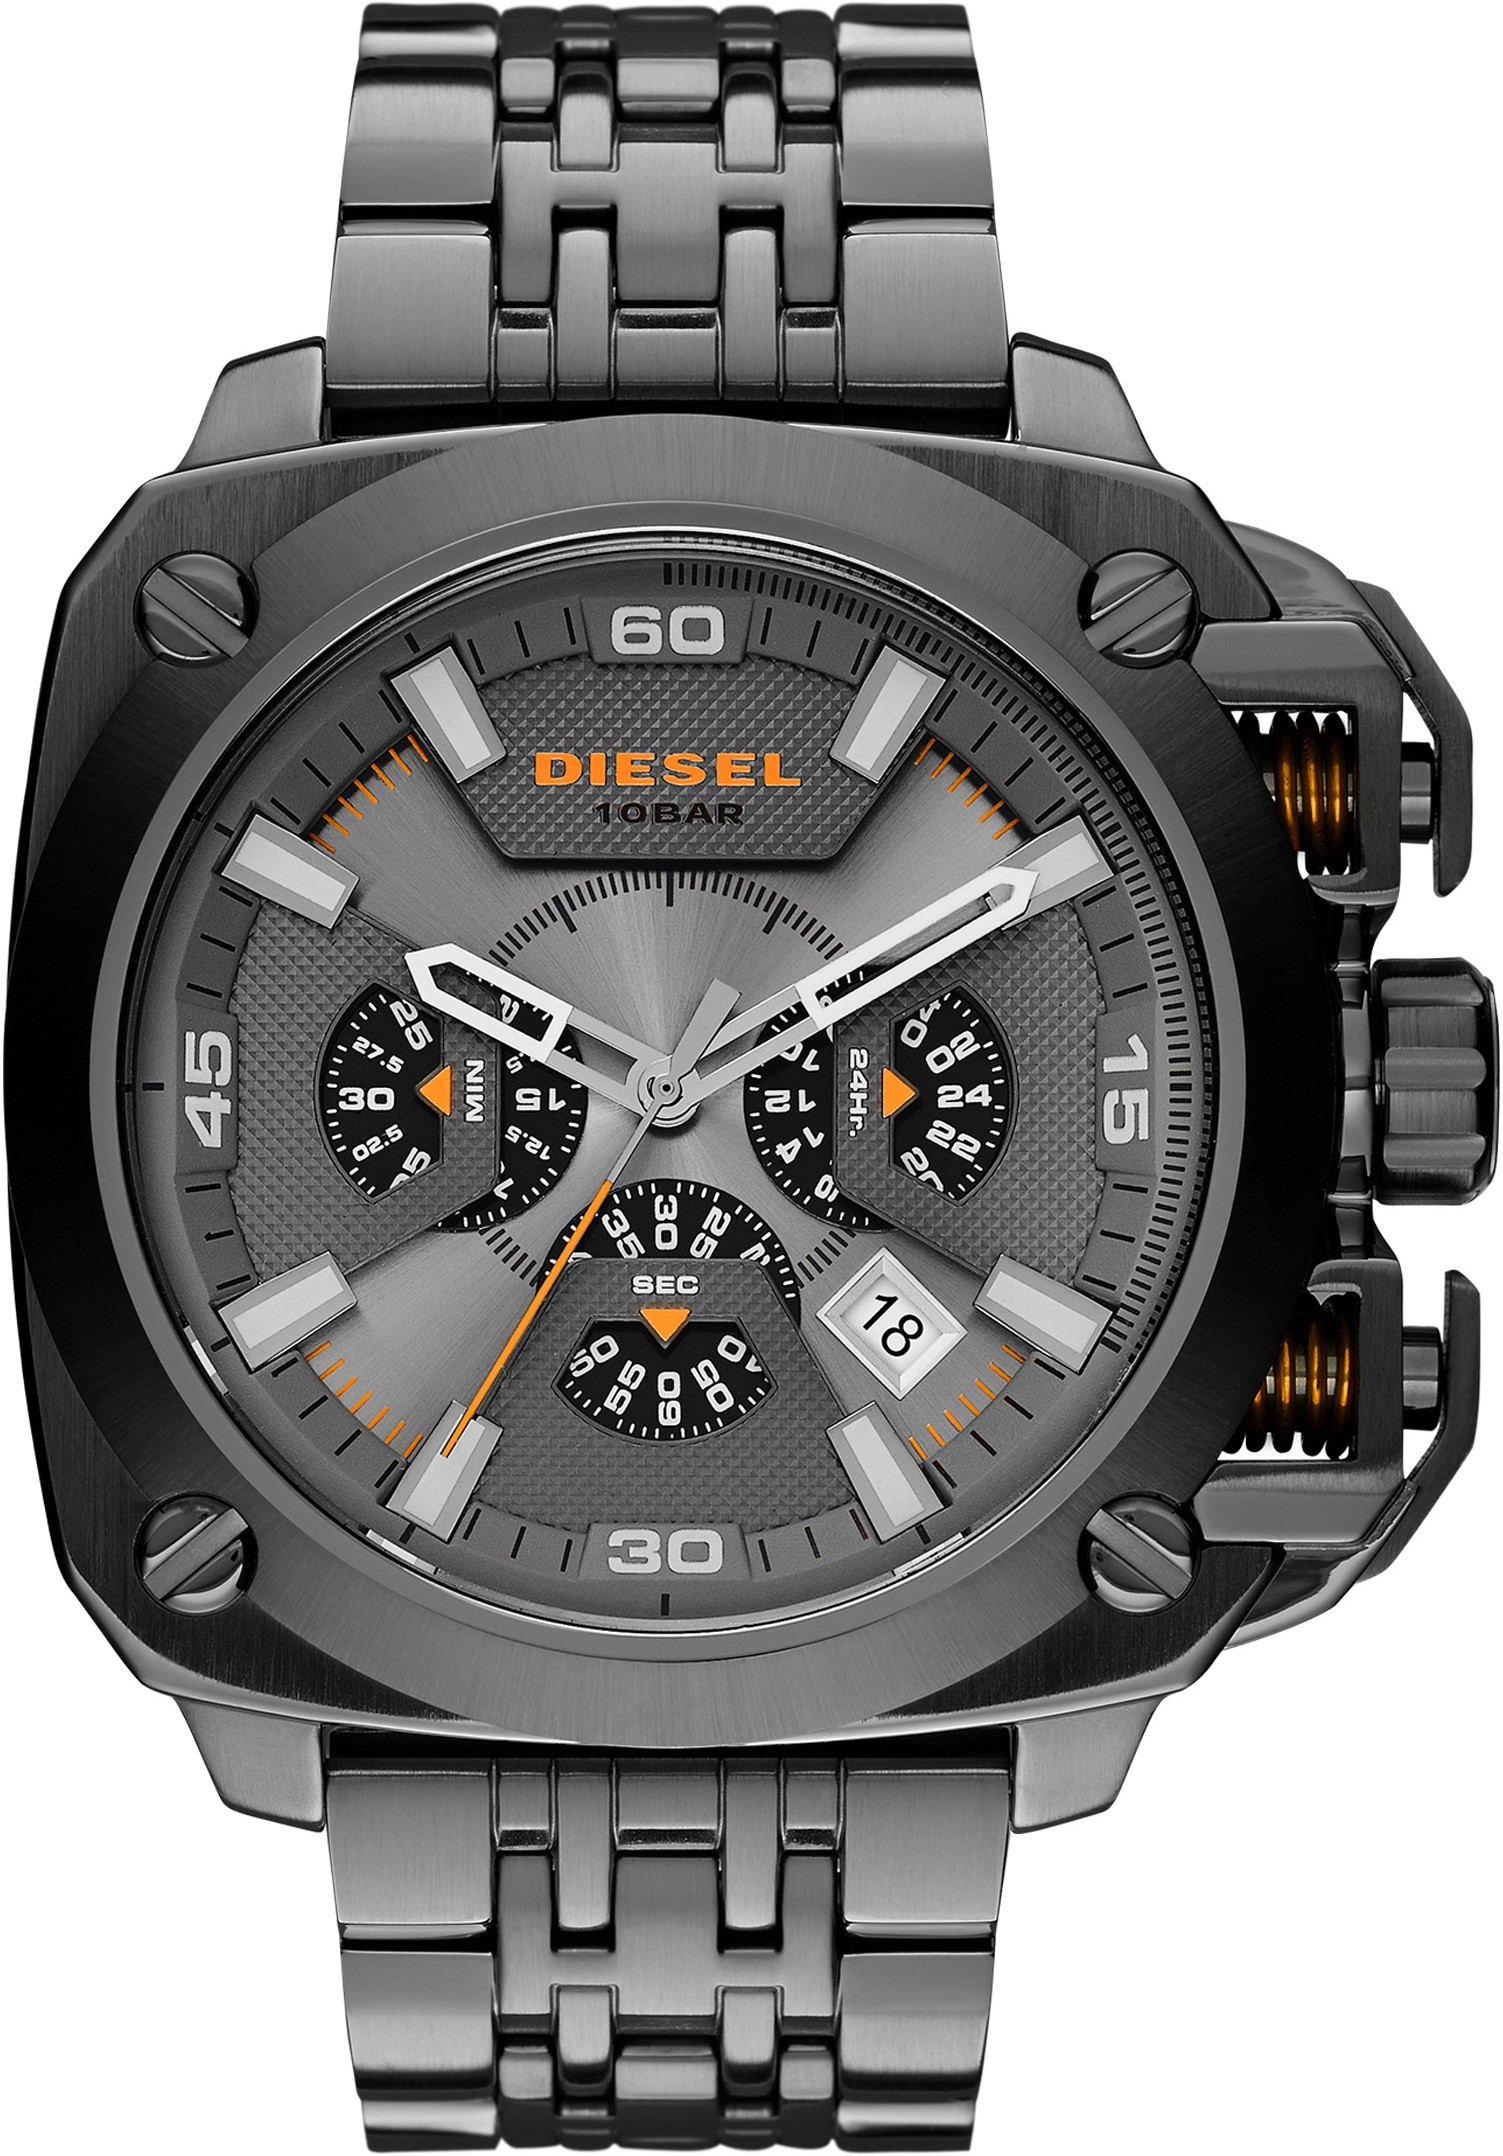 Deals - Delhi - Fastrack, Titan... <br> Watches<br> Category - watches<br> Business - Flipkart.com